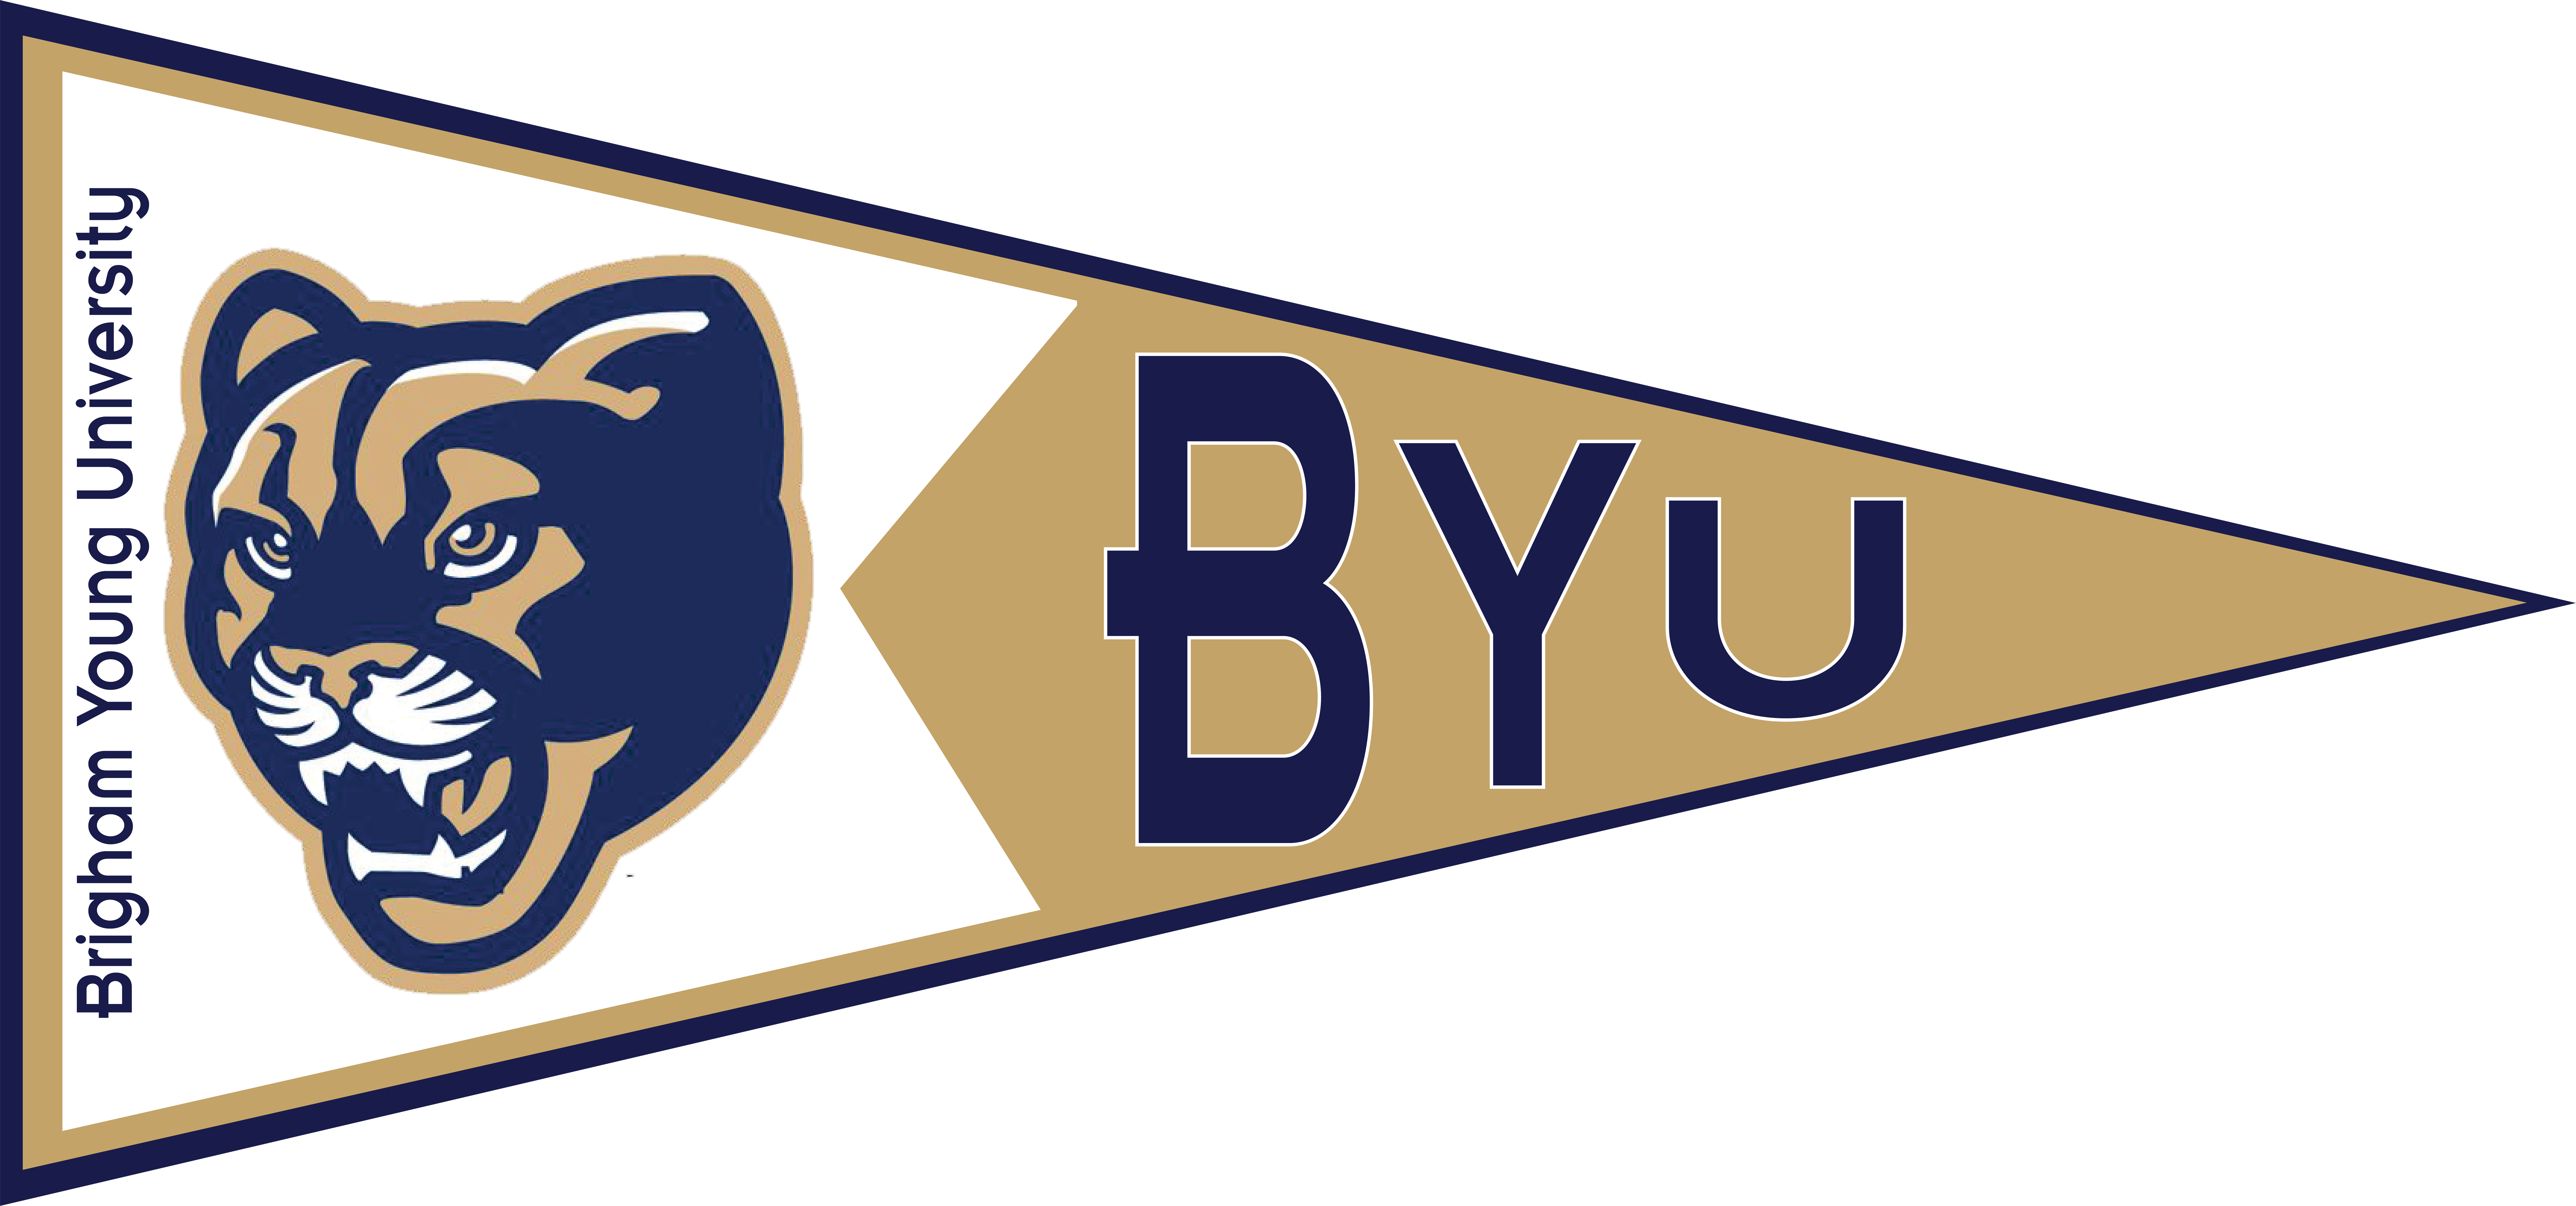 Football pennant clipart graphic freeuse stock Brigham Young University Pennant | GEAR UP graphic freeuse stock